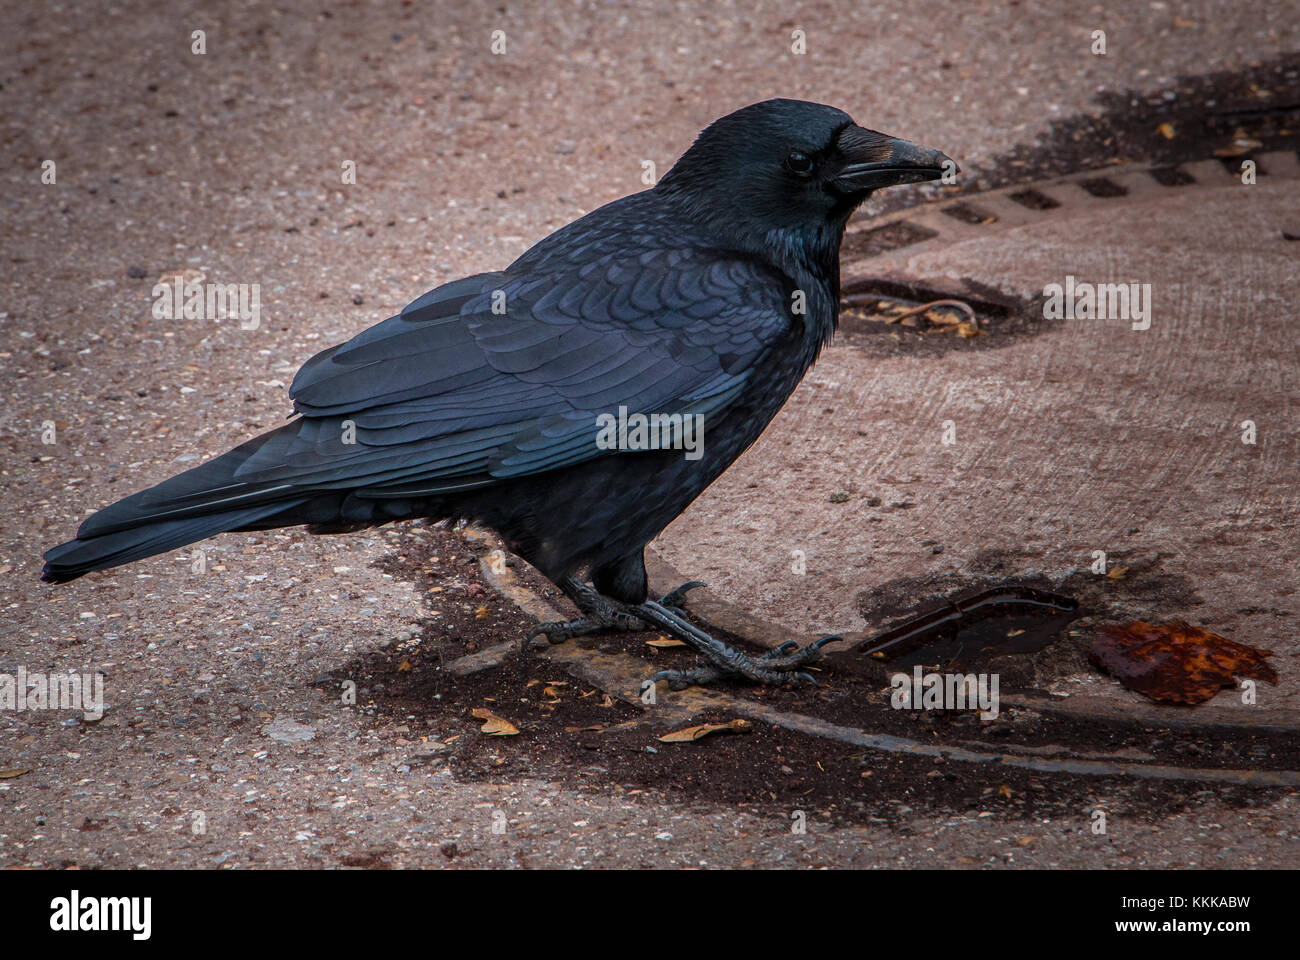 Big black raven on the brown ground. Black feathers. - Stock Image